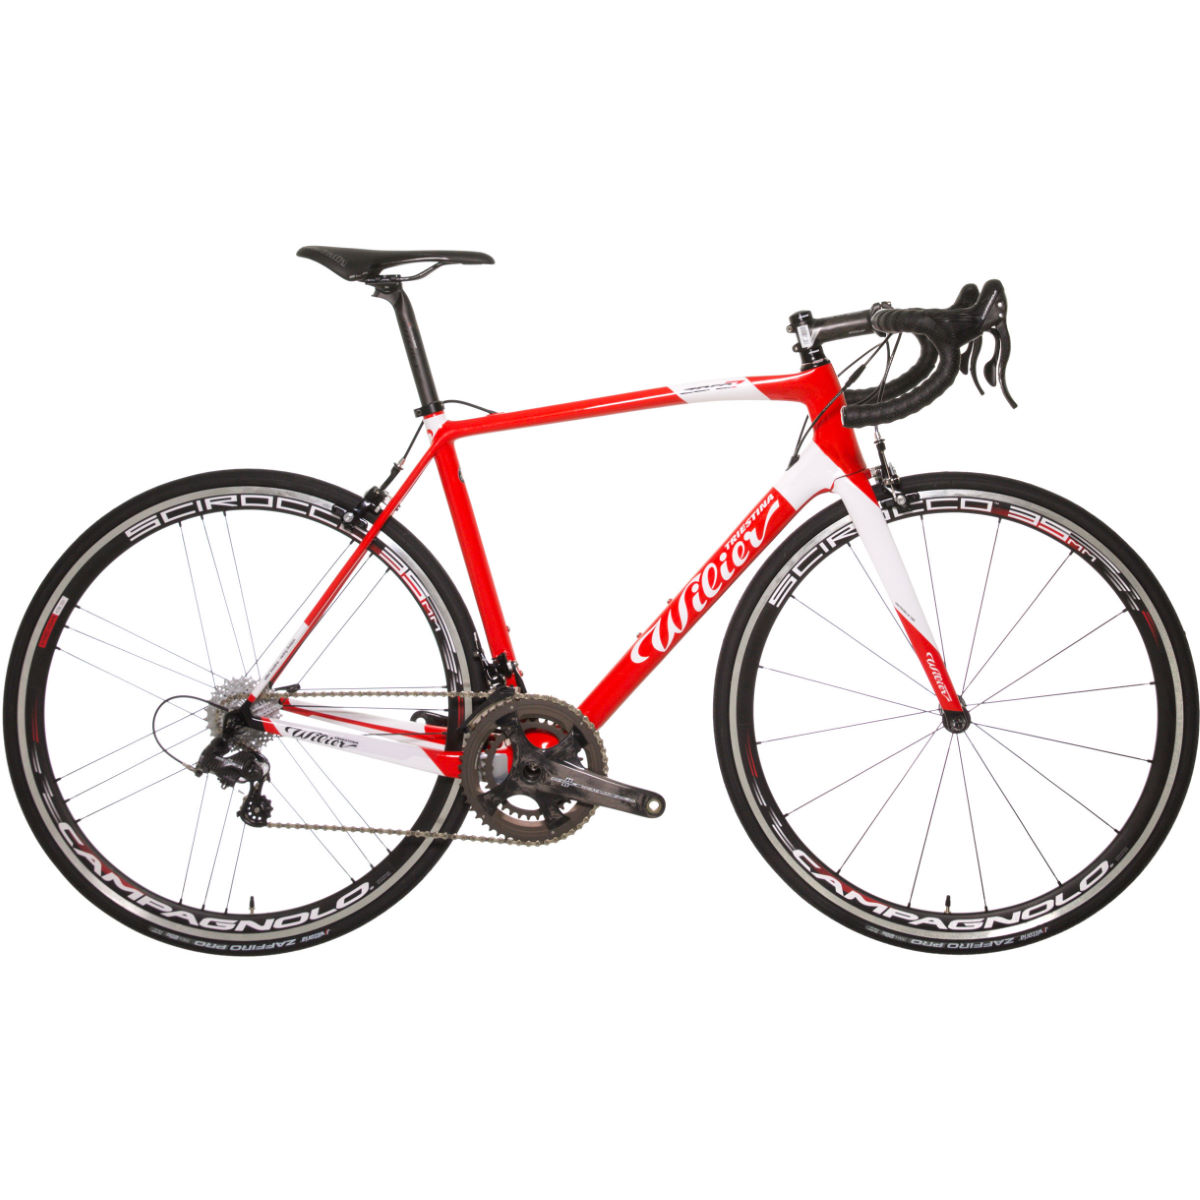 Wiggle Wilier Zero7 Chorus Scirocco S Red Wht Road Bikes Of A Bike Shock Absorbers 101 Tire Types Bicycle Geometry Fitting For